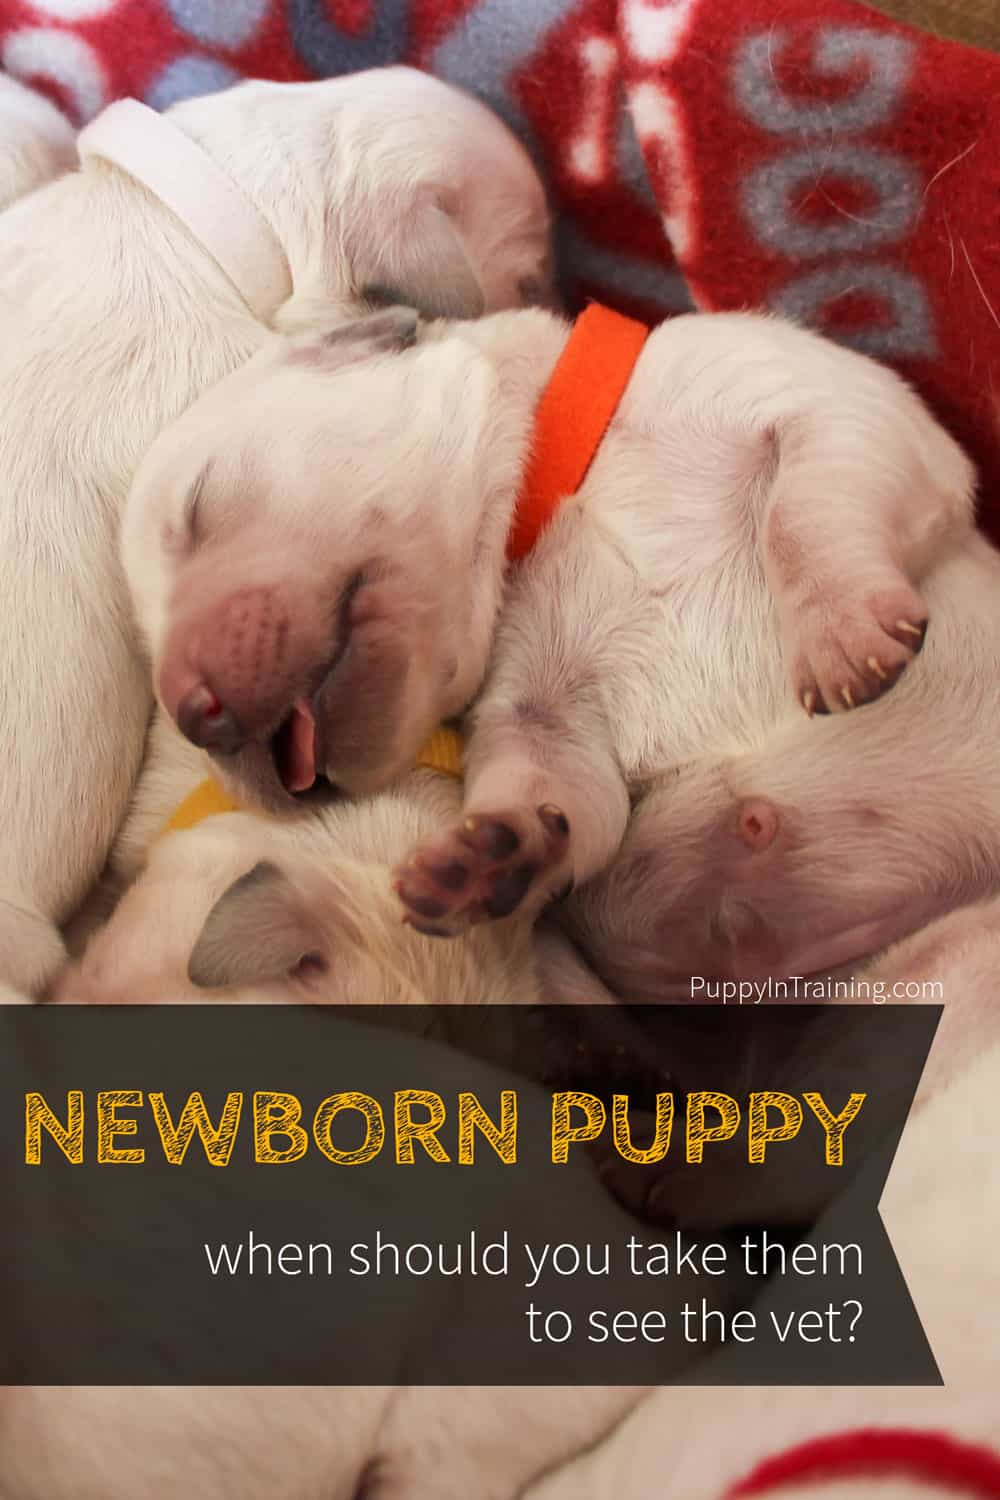 newborn puppy - when should you take them to see the vet?